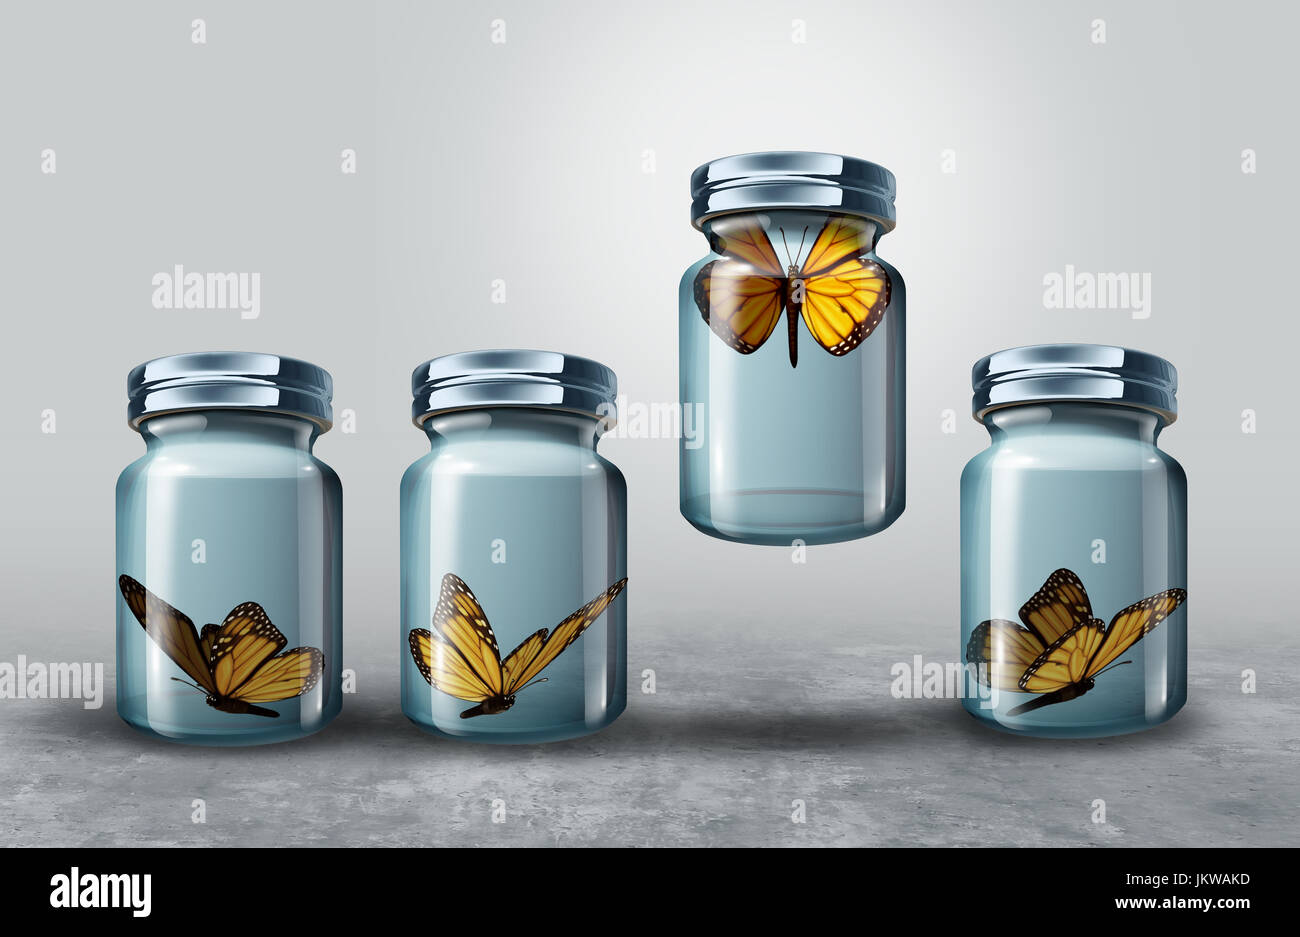 Concept of leadership and powerful business visionary metaphor as a group of resting butterflies in a closed glass - Stock Image